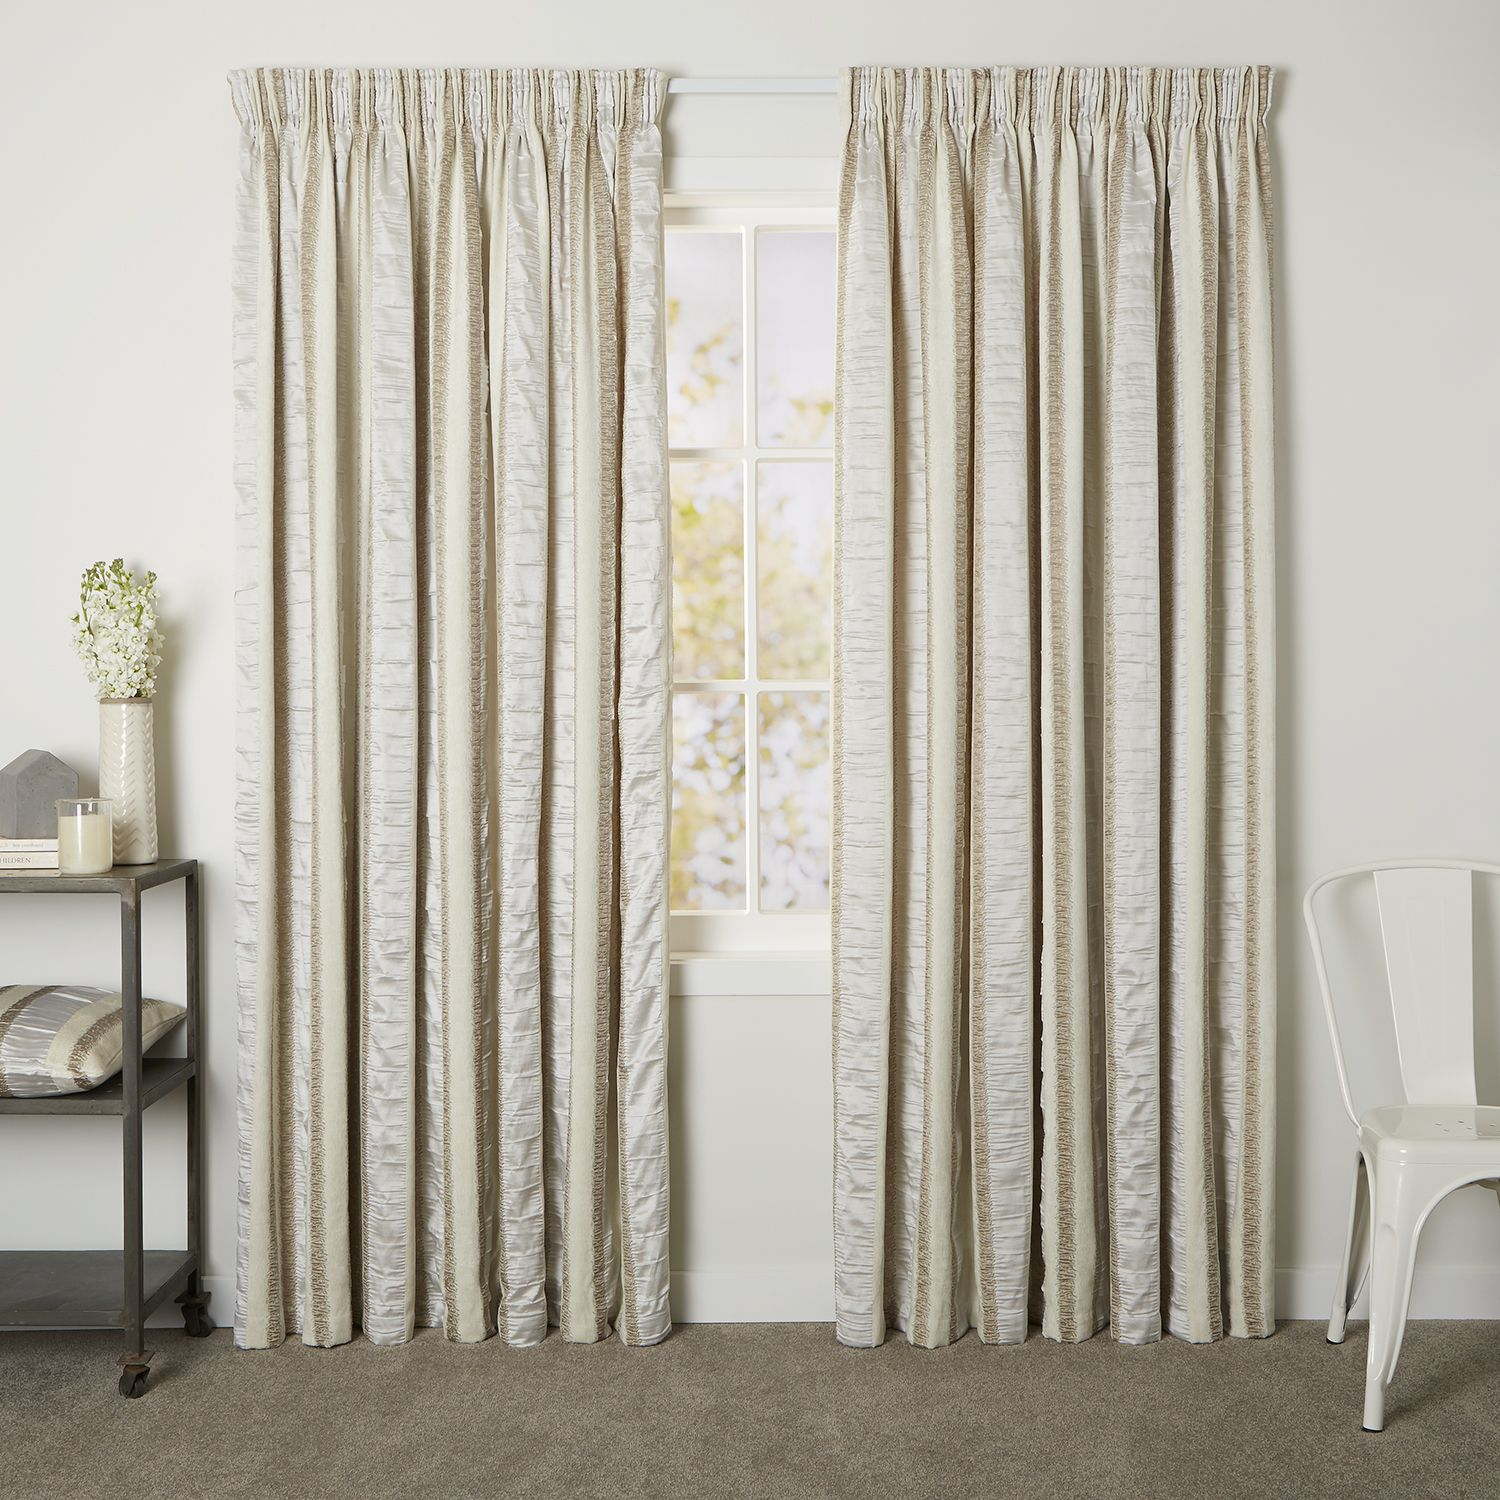 Estate Rice Readymade Lined Pencil Pleat Curtain Curtain Studio Buy Curtains Online Buy Curtains Online Curtains Pleated Curtains